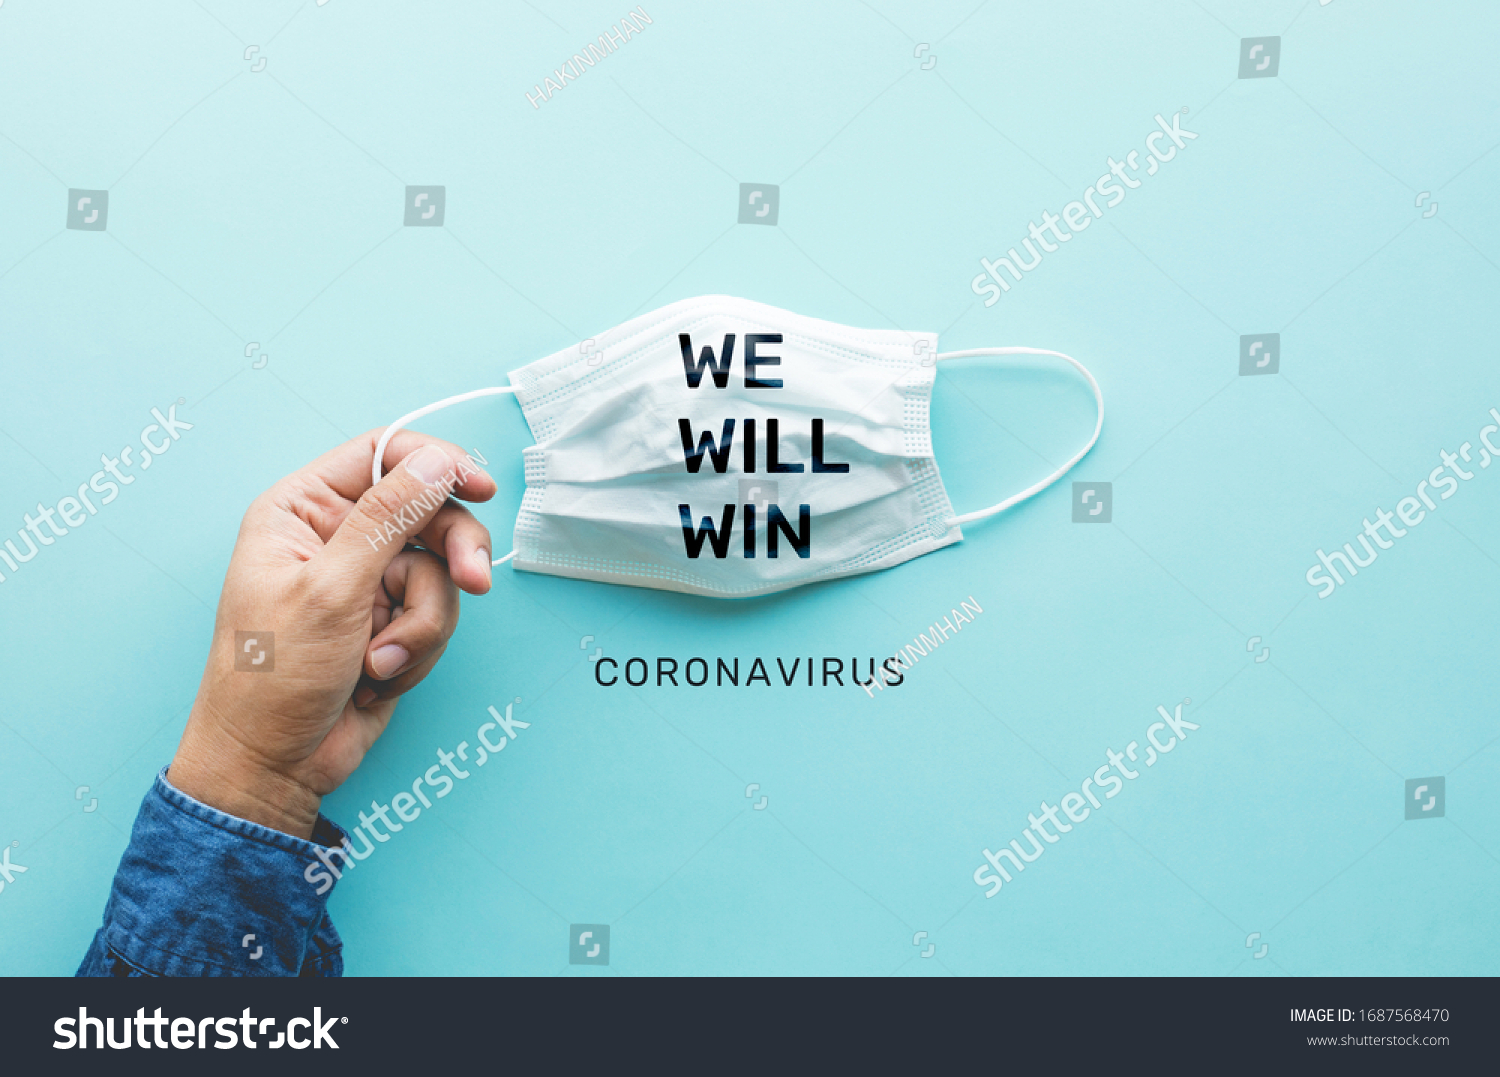 WE WILL WIN on coronavirus,covid-19 outbreak around the world .body health care.medical equipment.demand and supply.hope and solution.big change situation,Protect yourself with mask  #1687568470